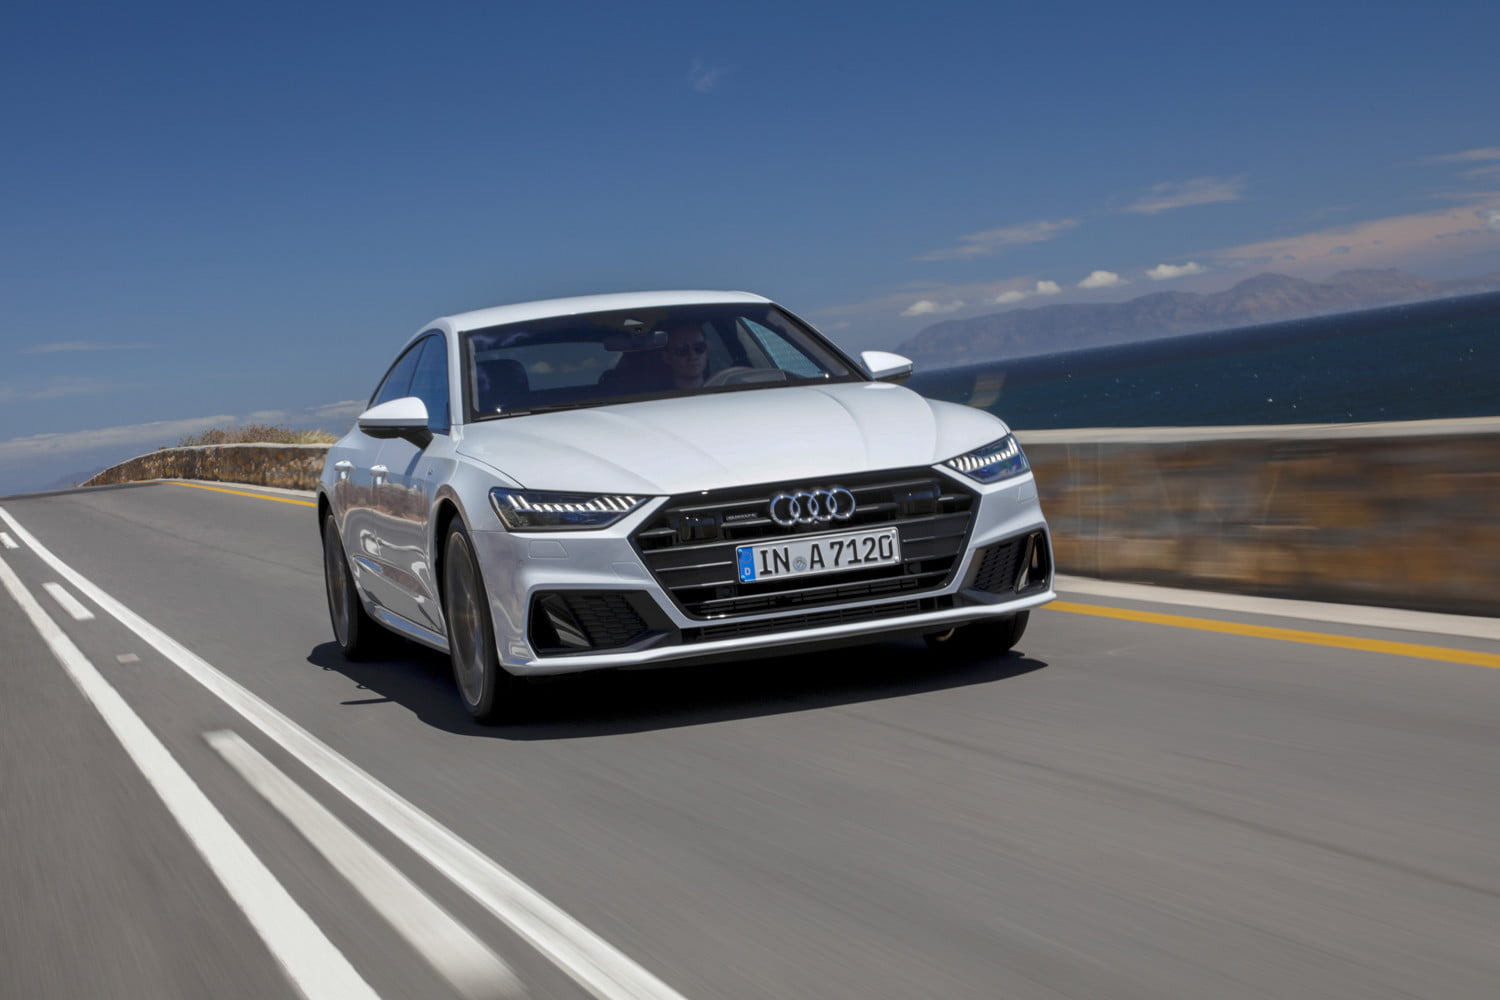 You Ll Need 68 000 To Land A Tech Rich 2019 Audi A7 In Your Driveway Digital Trends